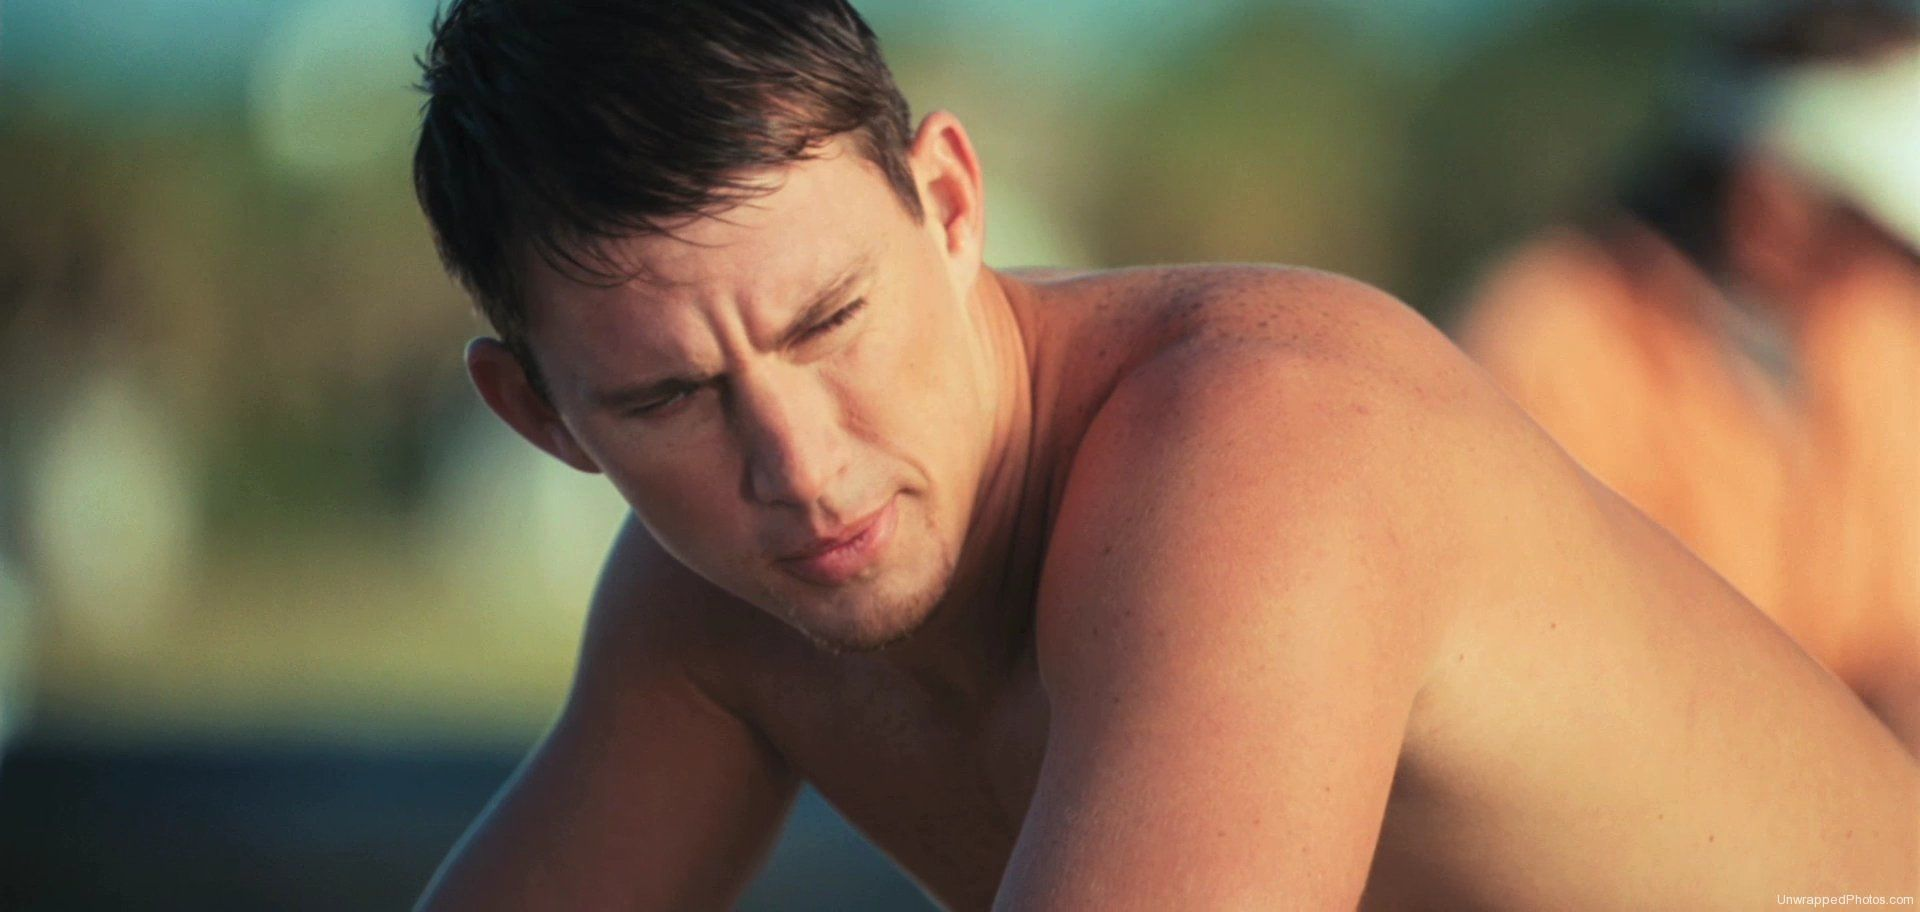 Image detail for -Trailer Screen Caps of Channing Tatum in 'Dear